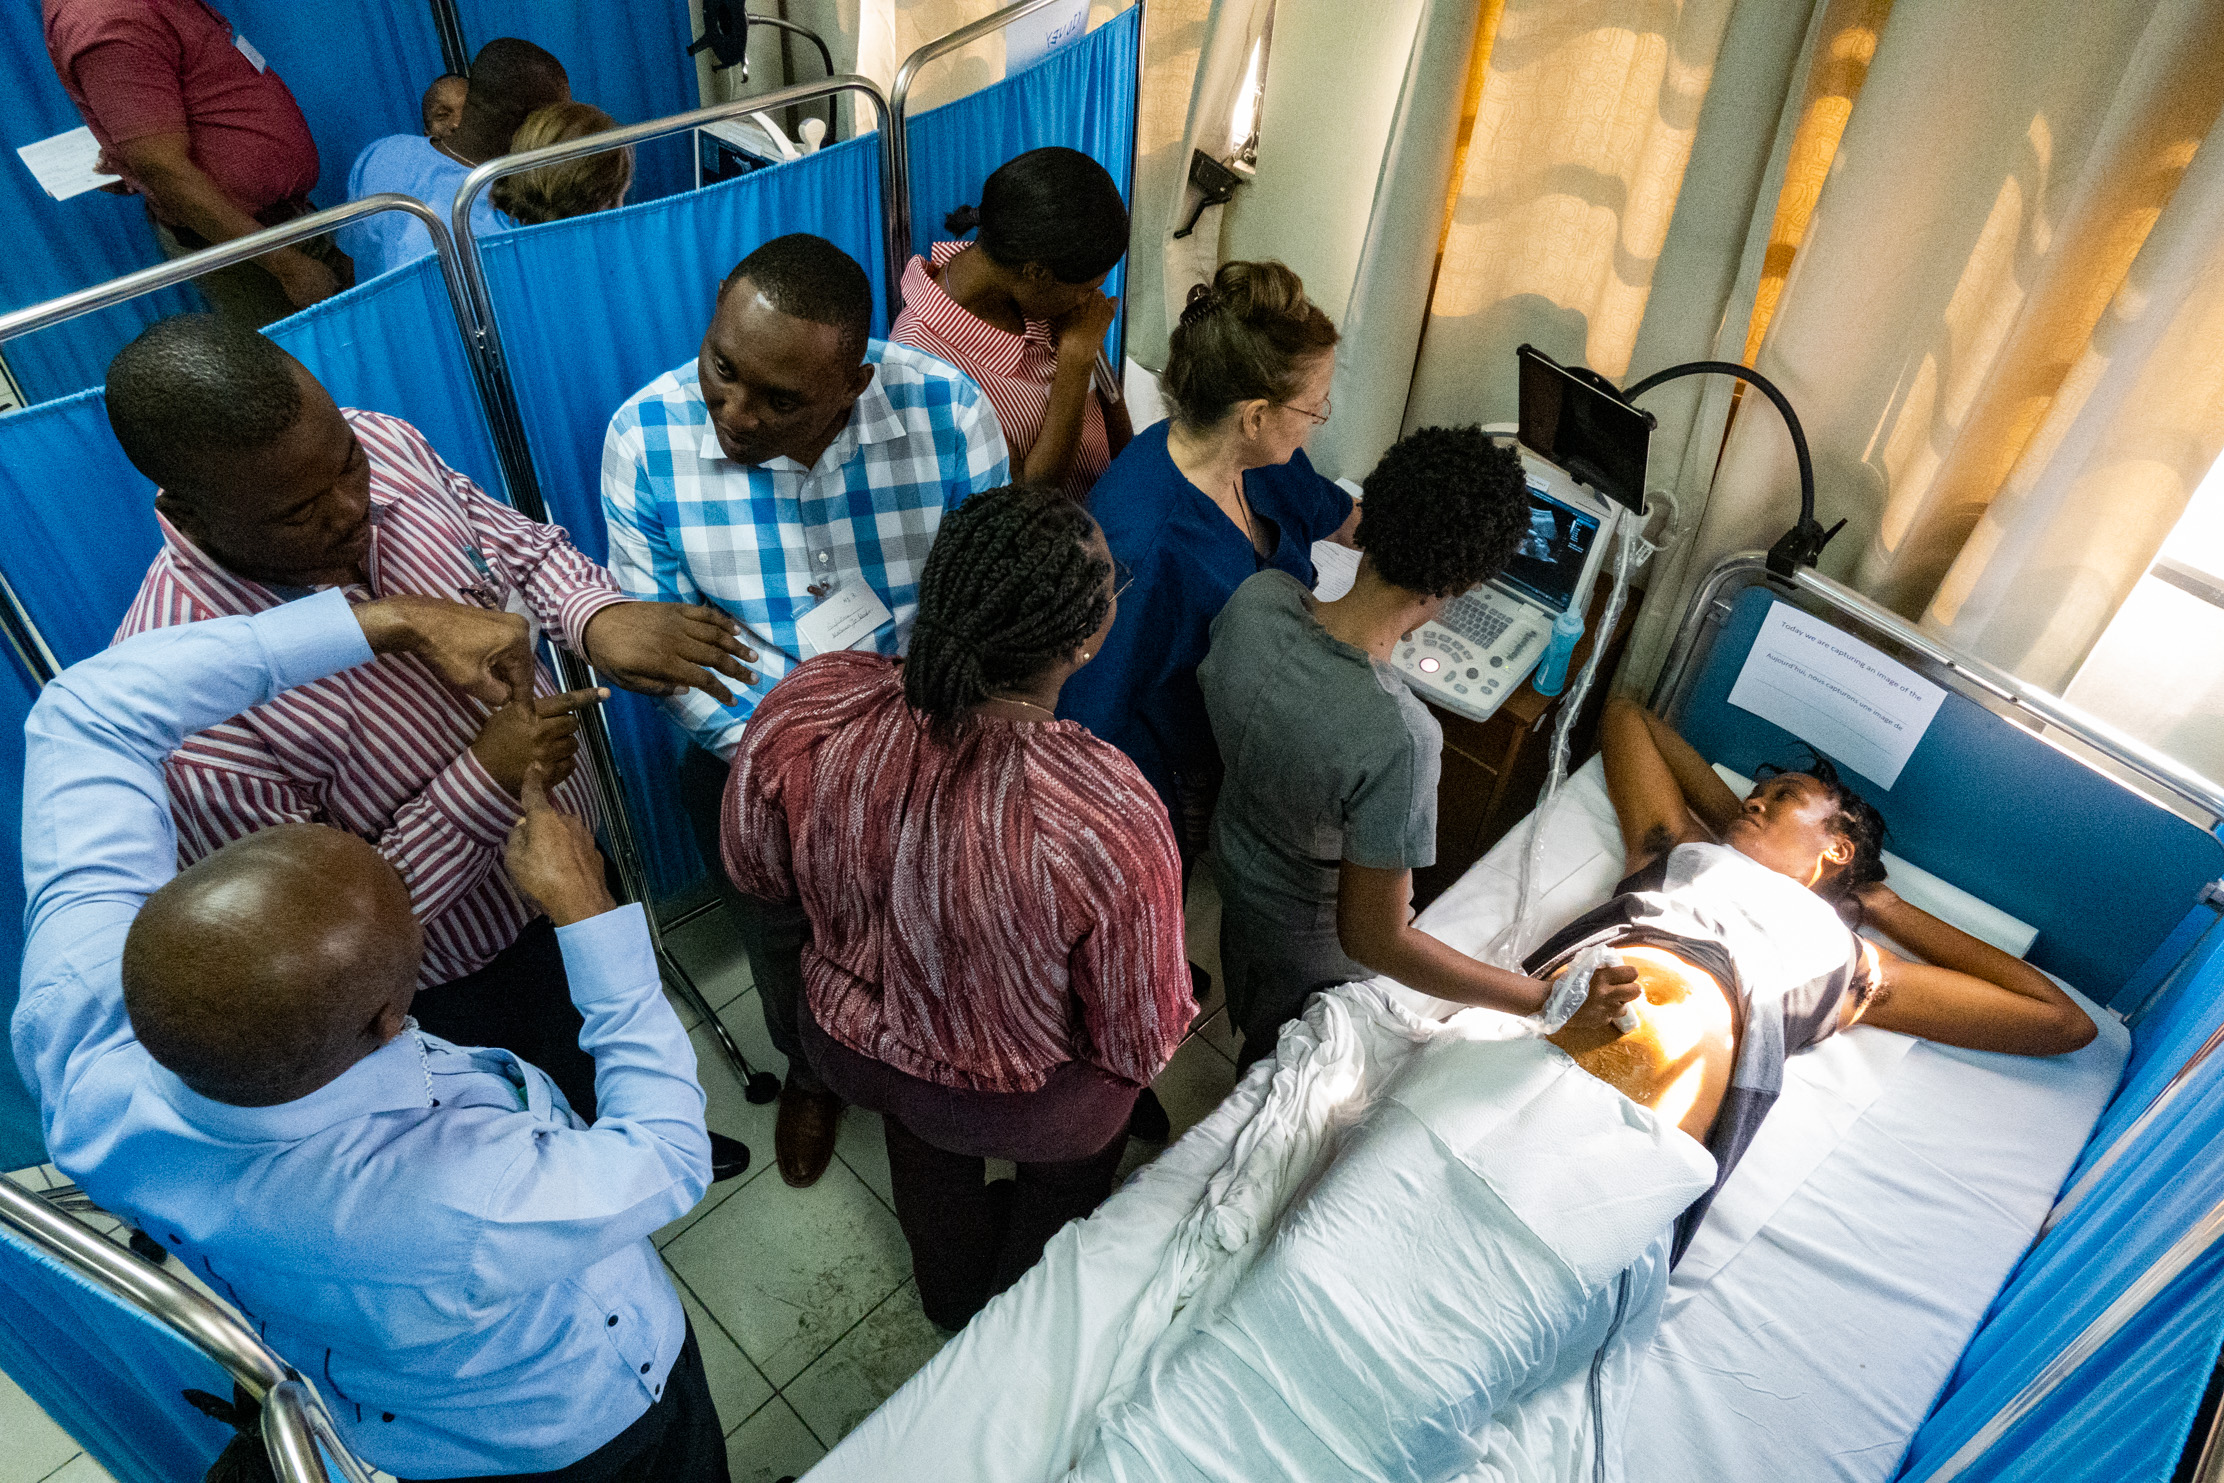 International OB/GYN, sonographer, and NYAGI veteran, Alecia Martin-Hirsel, steps aside as her group of Haitian doctors and nurses take over the probe, exploring and teaching themselves and each other.